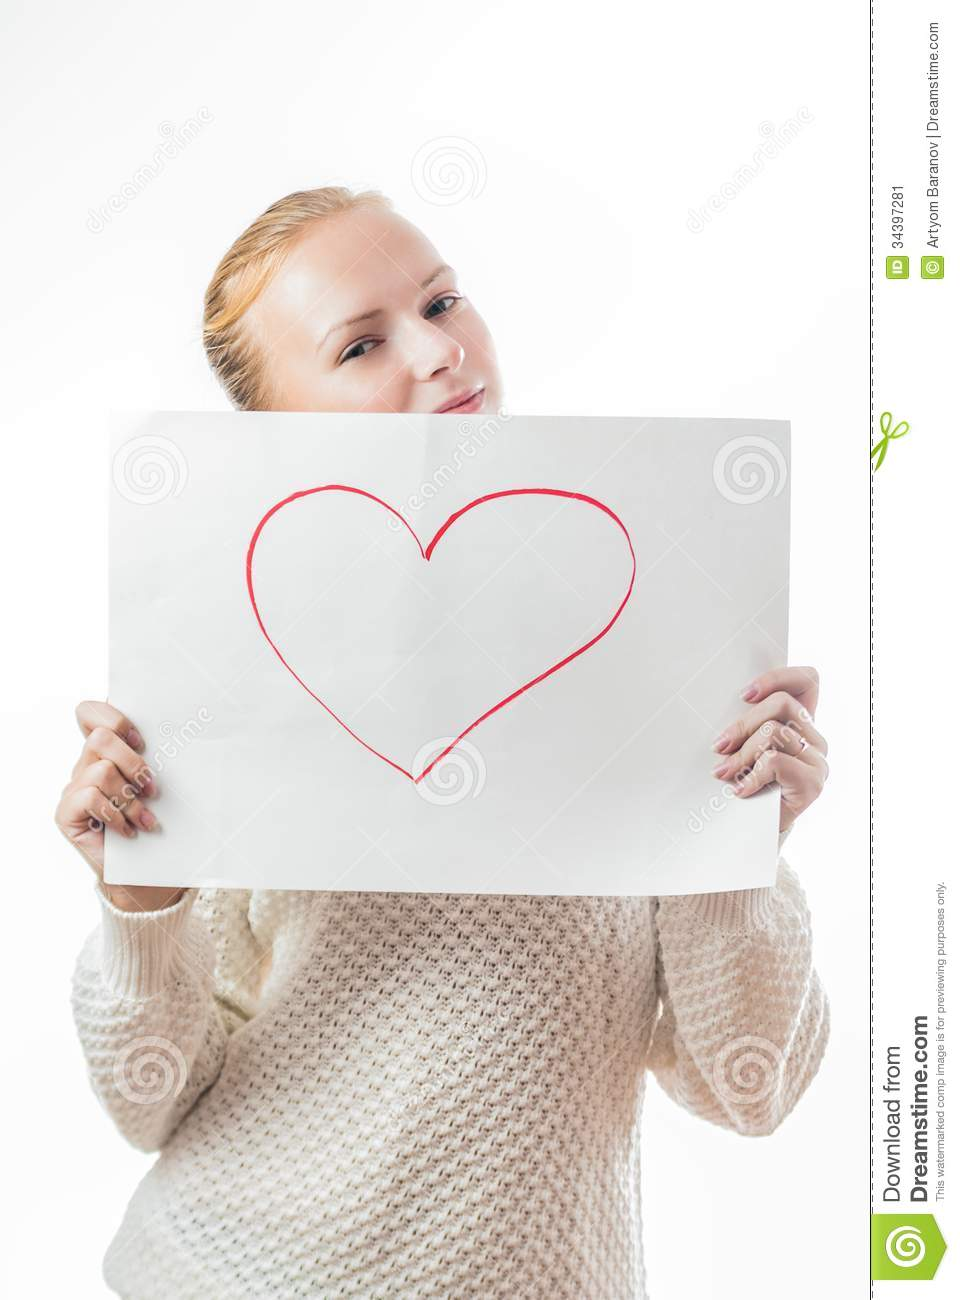 Young girl with the heart on the sheet of paper